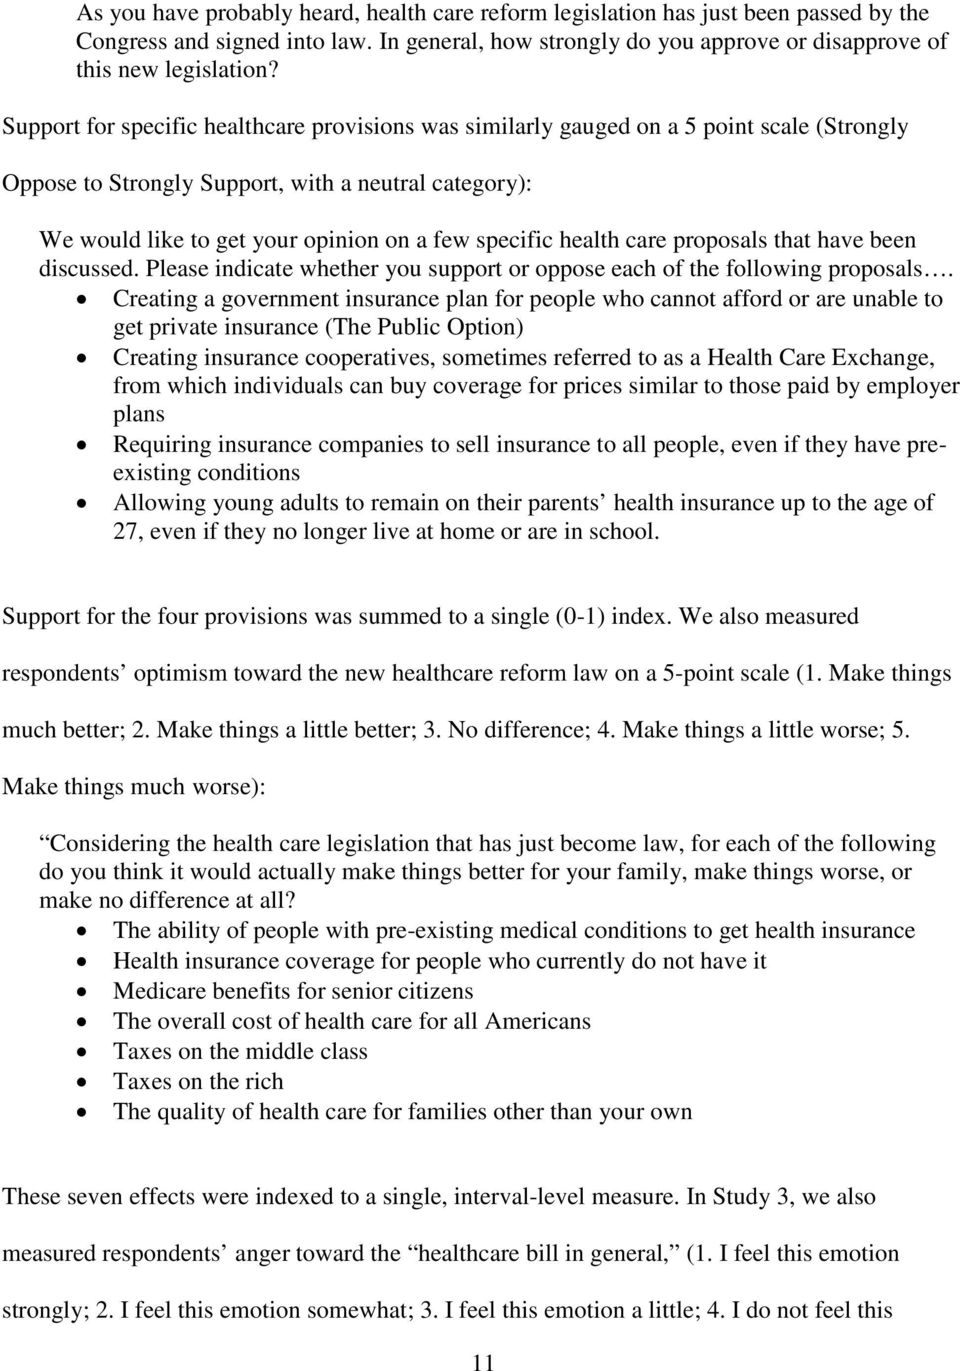 health care proposals that have been discussed. Please indicate whether you support or oppose each of the following proposals.